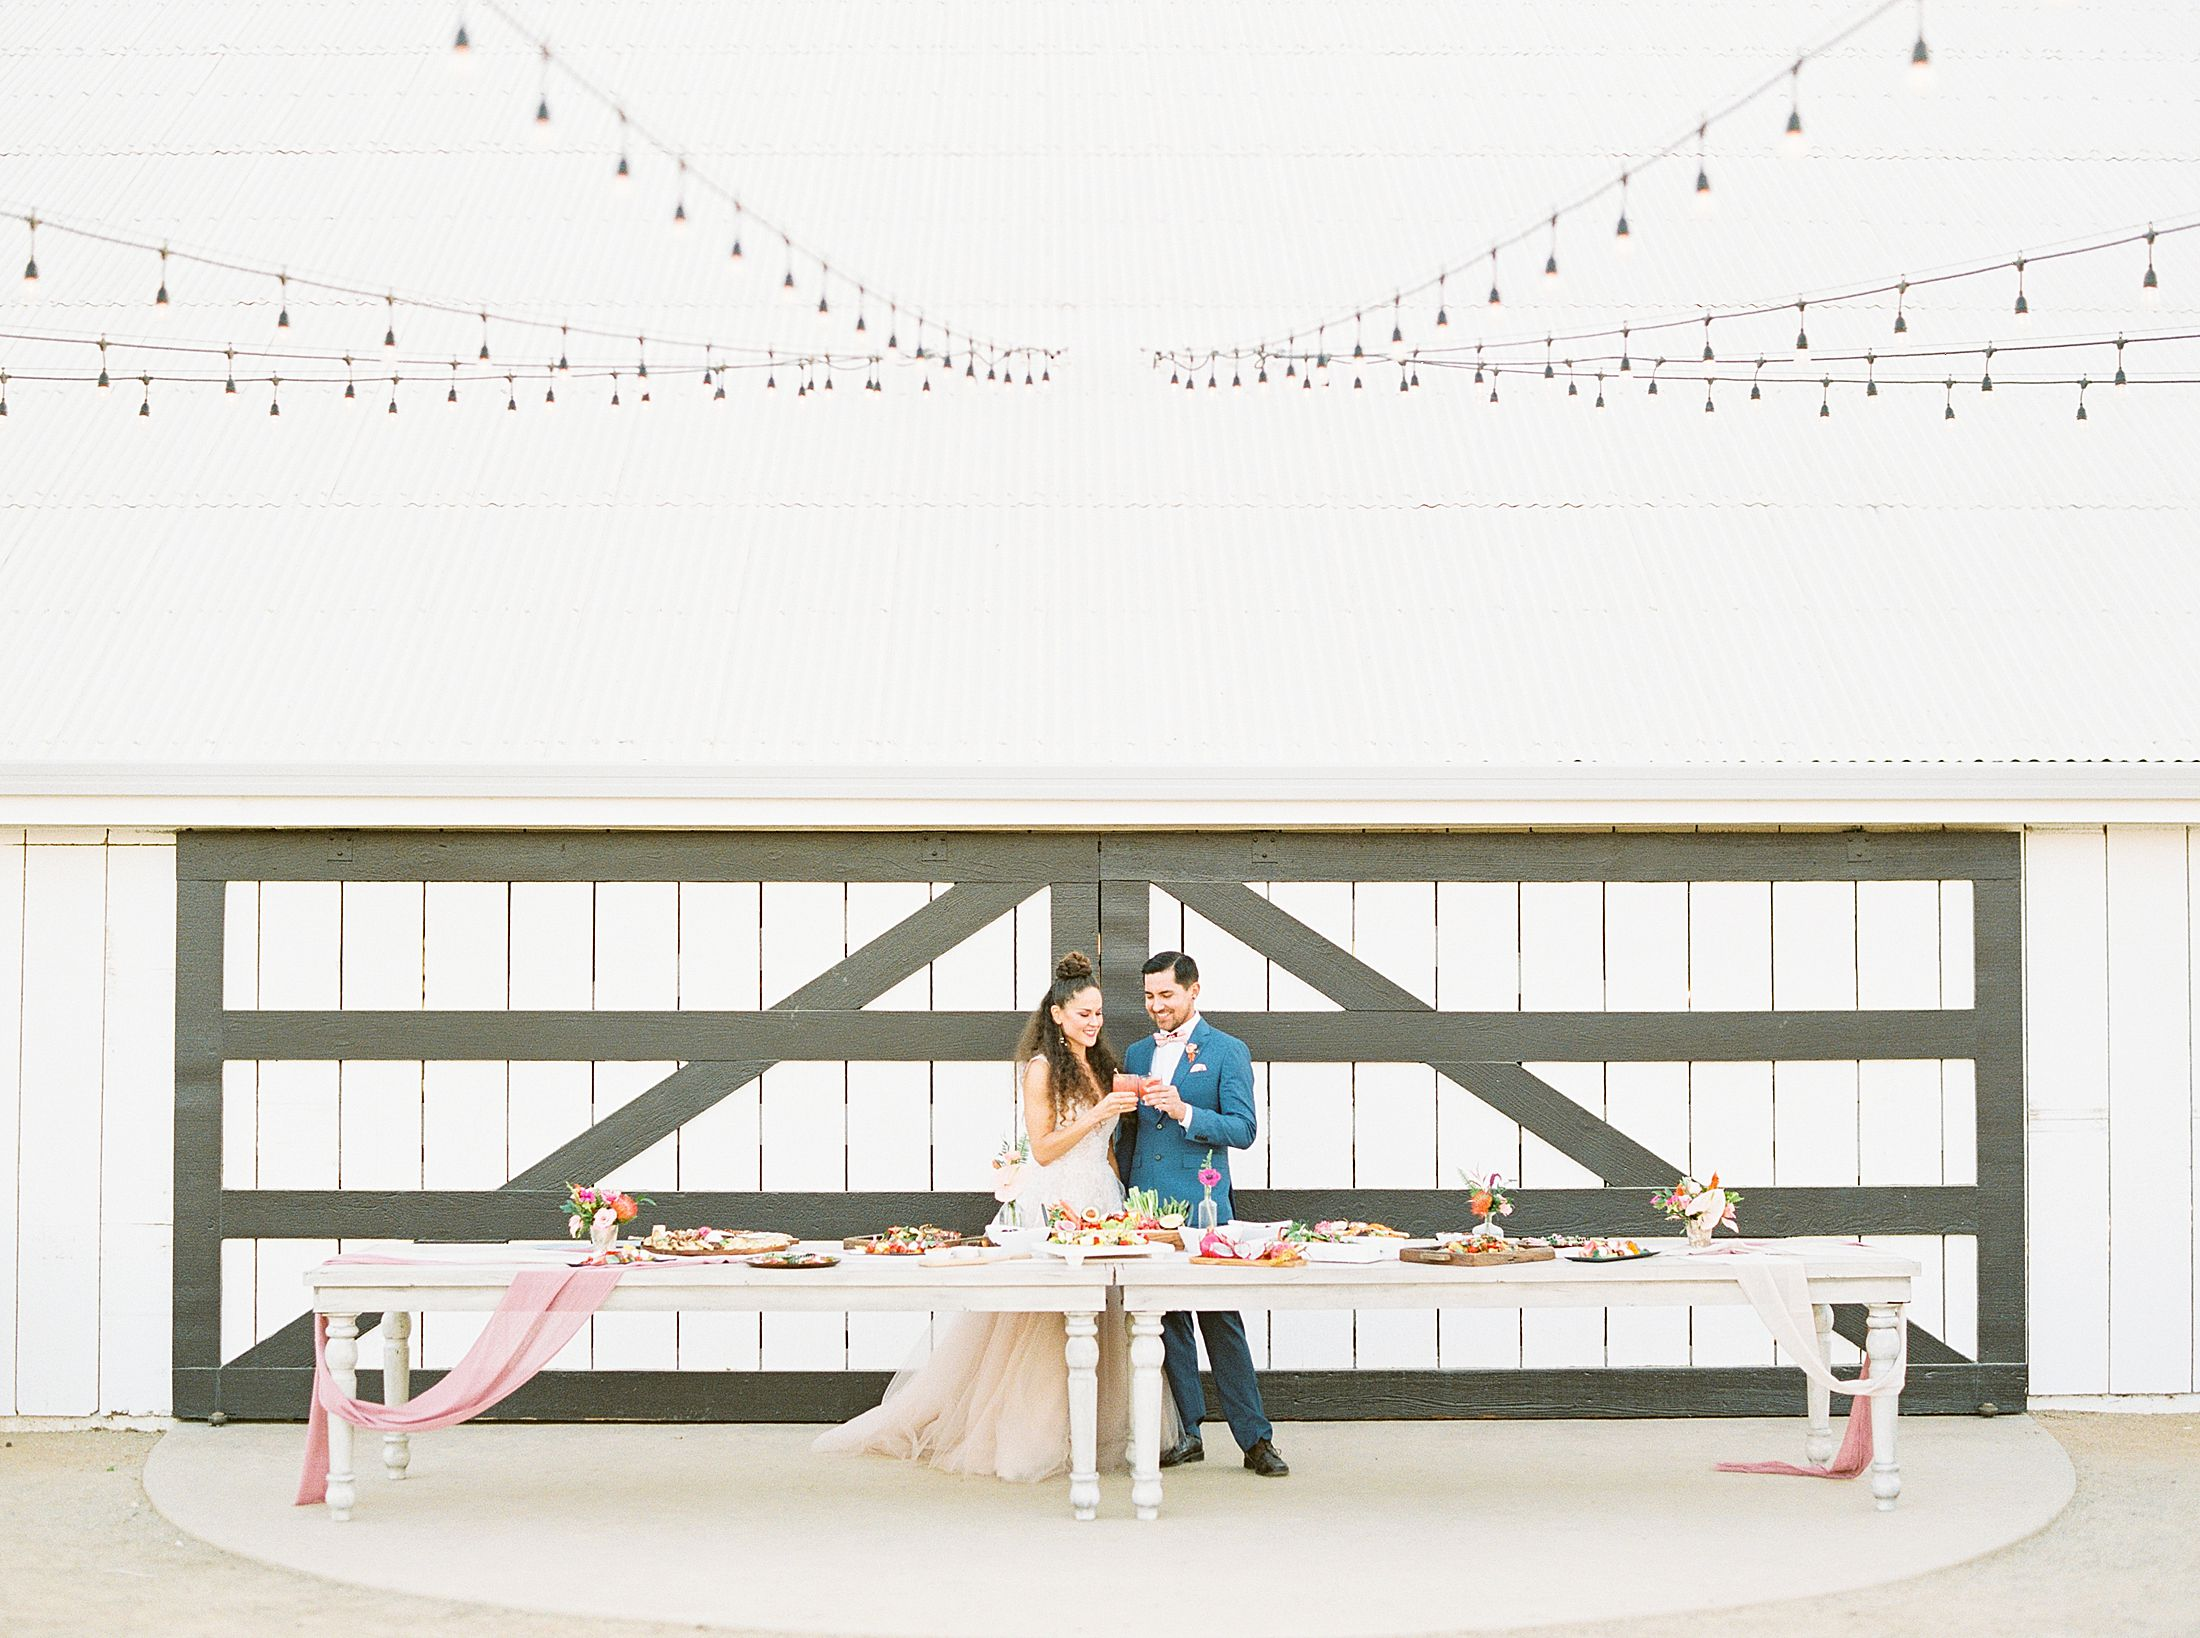 White Barn Edna Valley Wedding Inspiration - San Luis Obispo Wedding - Featured on Green Wedding Shoes - Ashley Baumgartner - FM Events SLO - SLO Wedding Photographer_0026.jpg